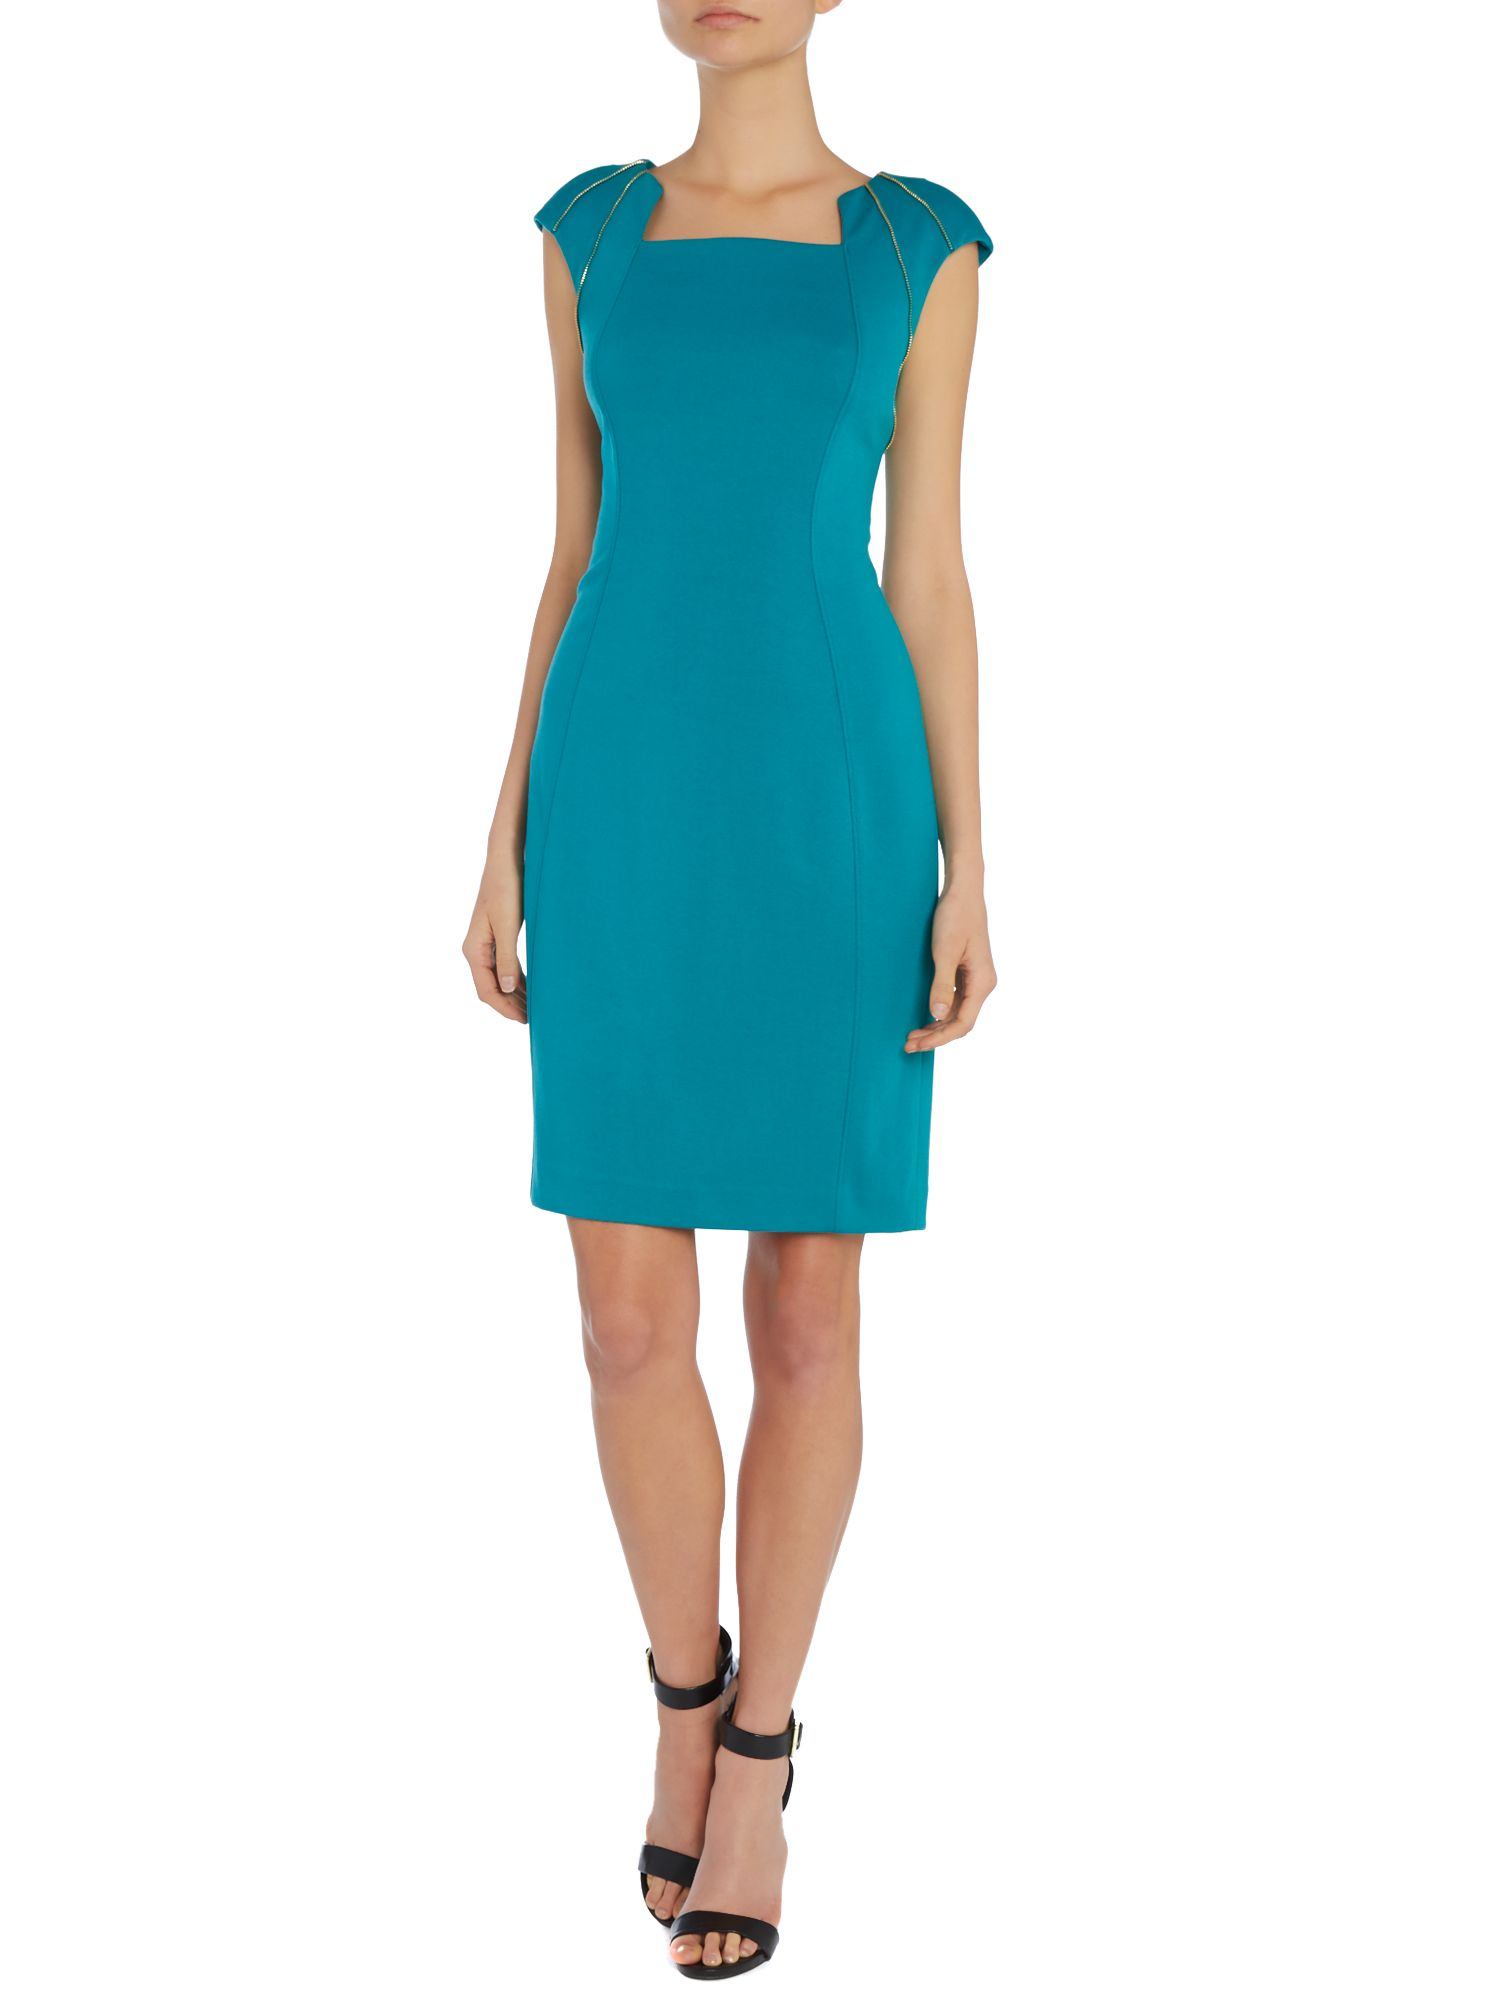 Cap sleeve dress with zip shoulders